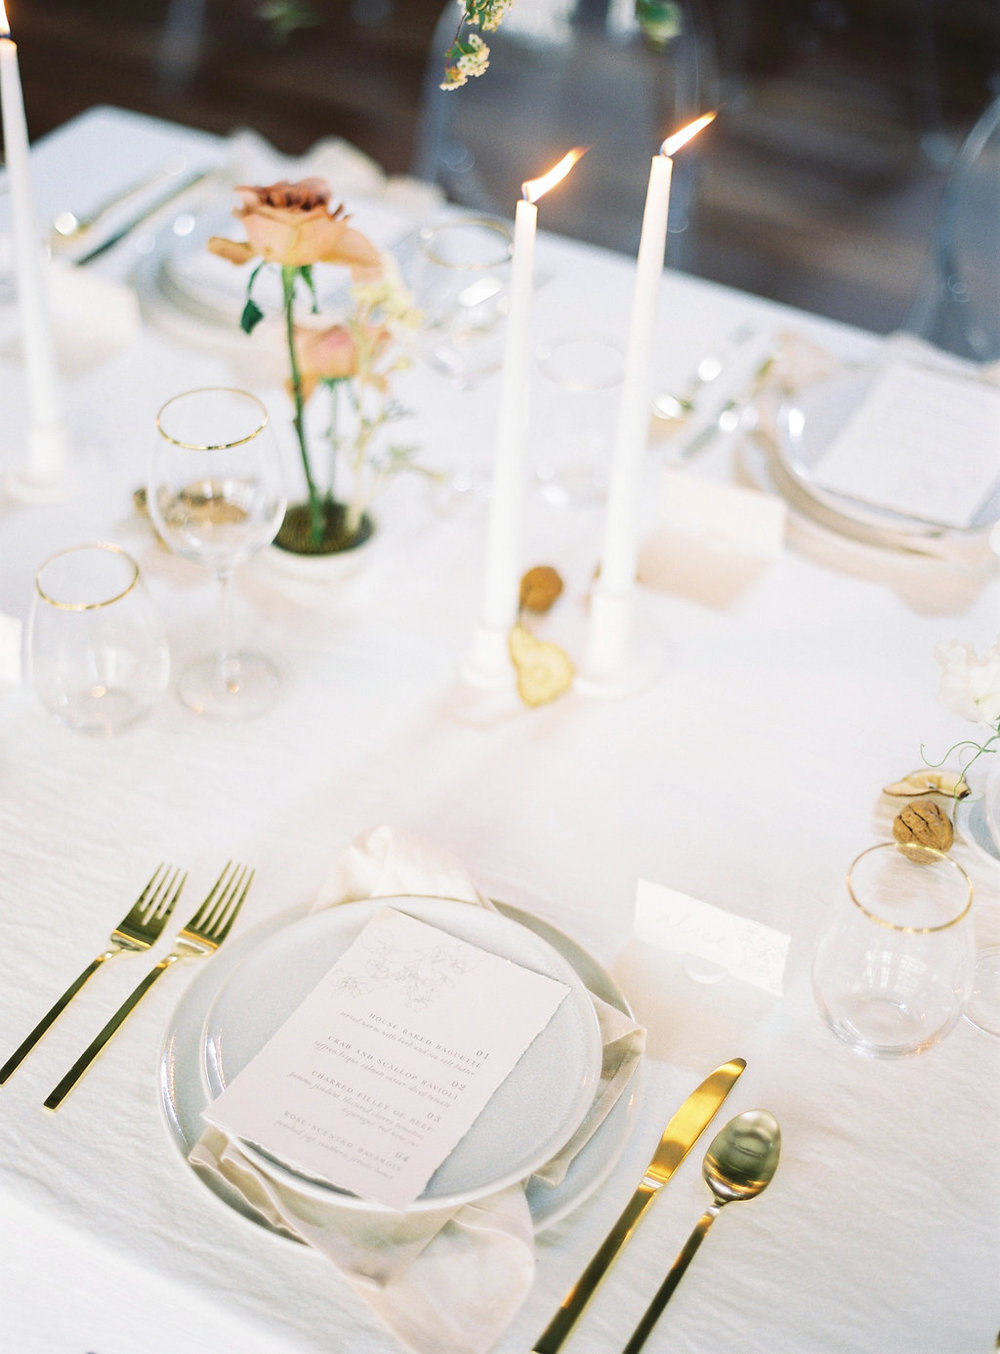 Aravella Event Design | Modern Minimalist Bridal Inspiration | Photo by Katie Grant Photography | Tablescape | Place Setting